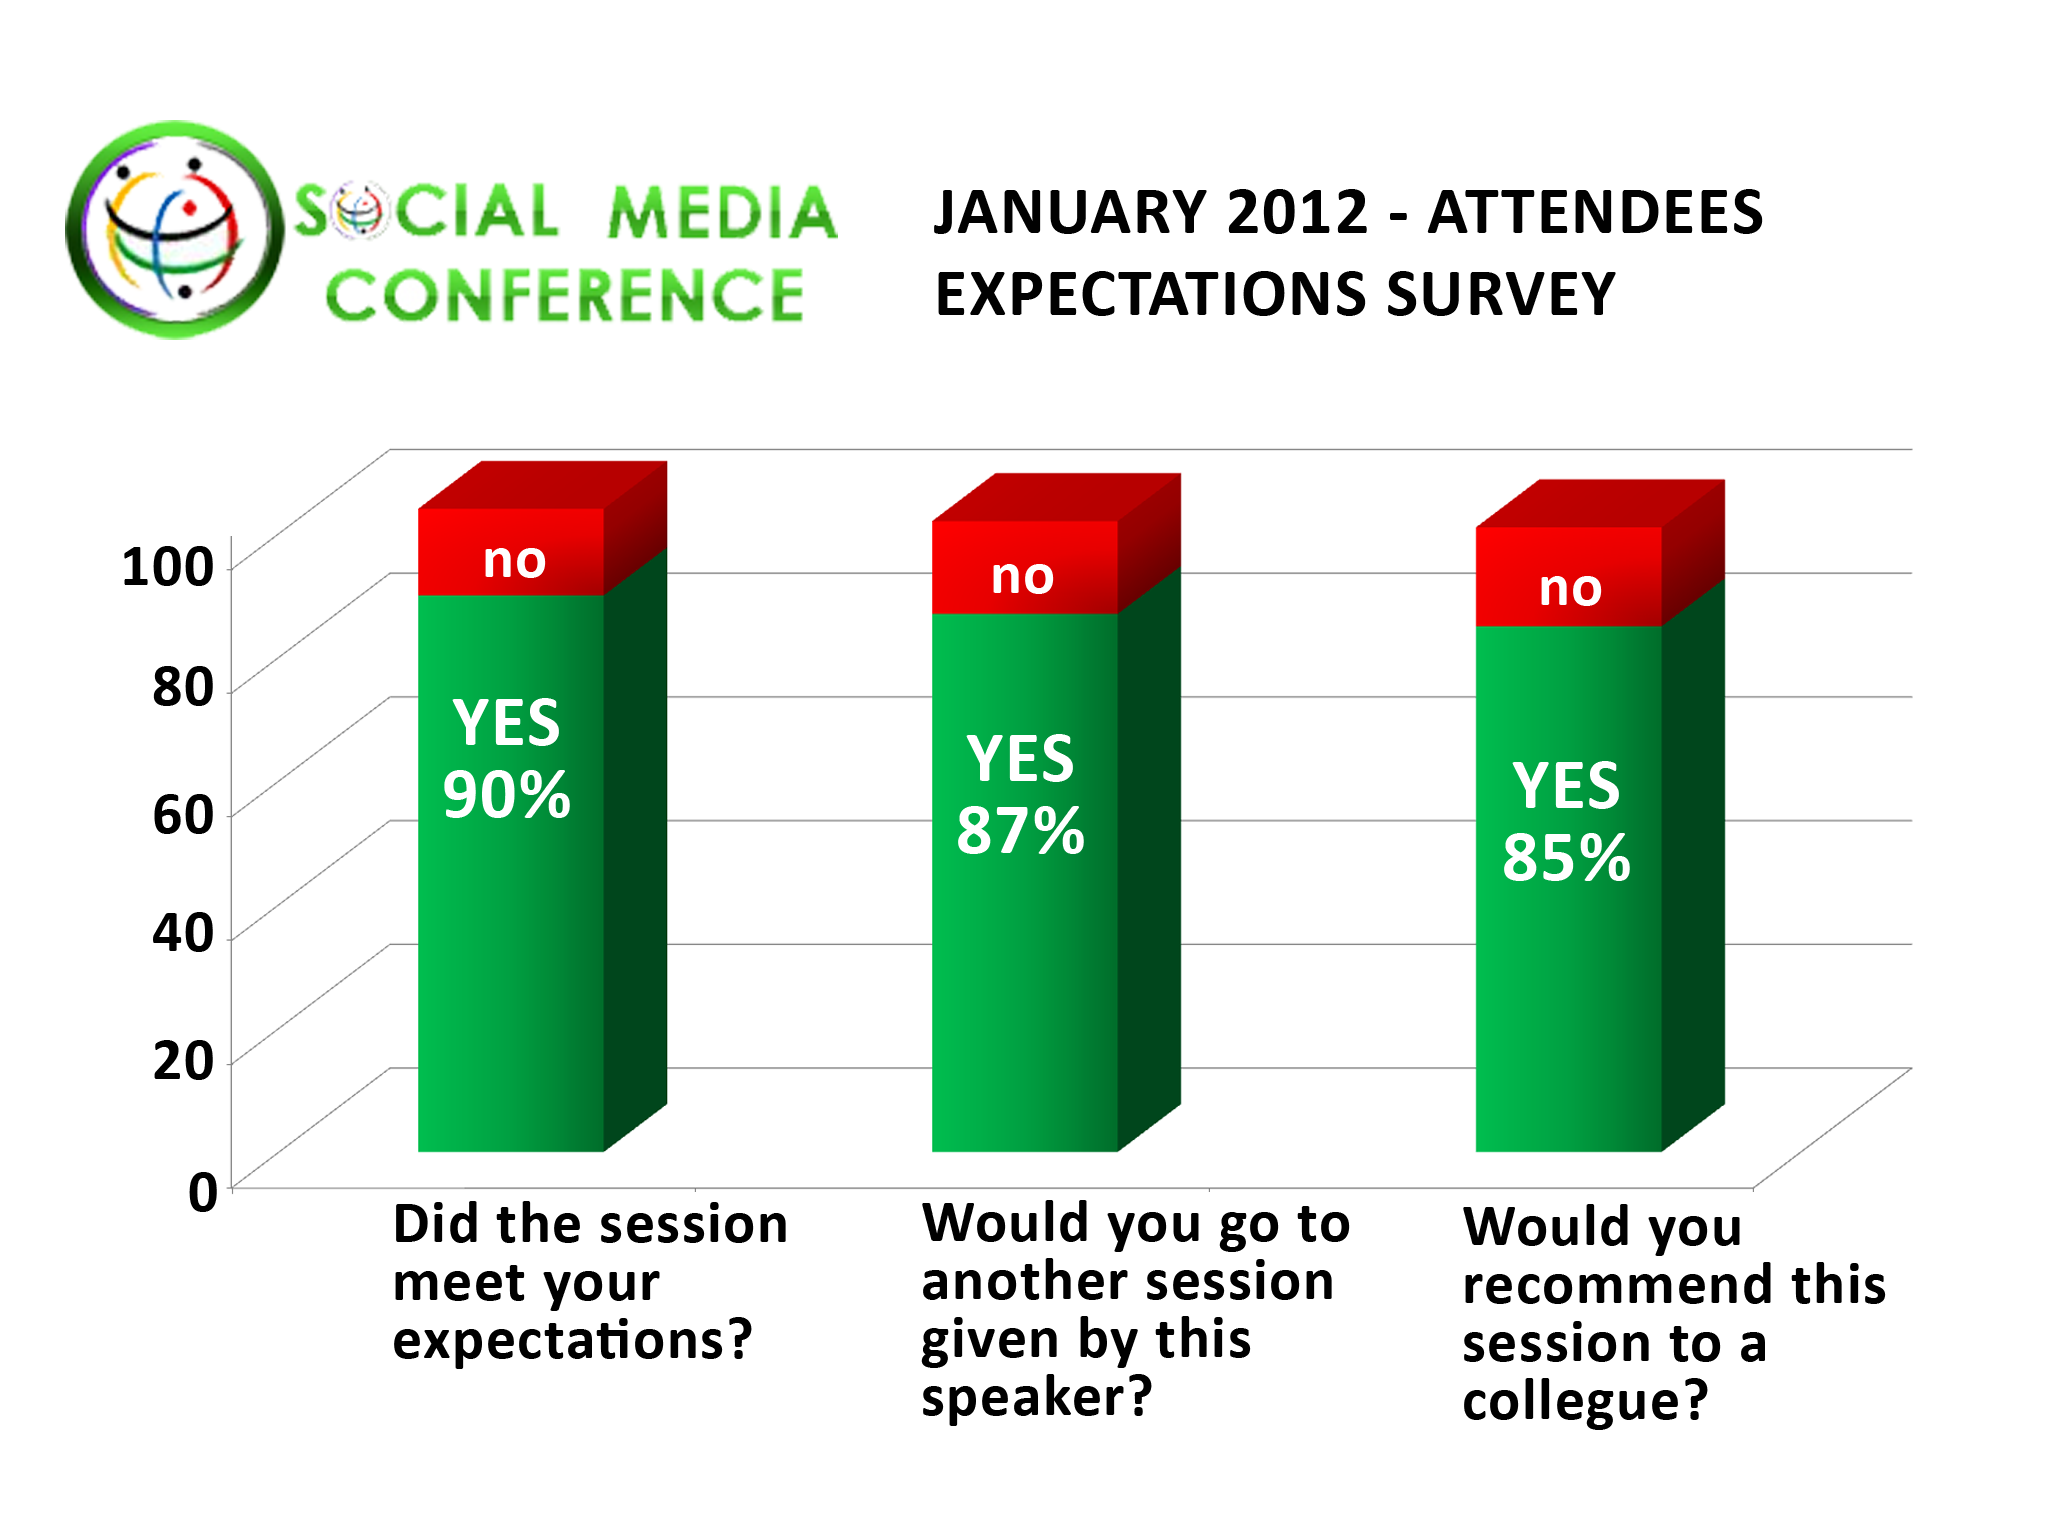 Social Networking Conference January 2012 Lecture Statistics Dating Business Delegate Expectations and Speaker Recommendations for Dating Industry Sessions